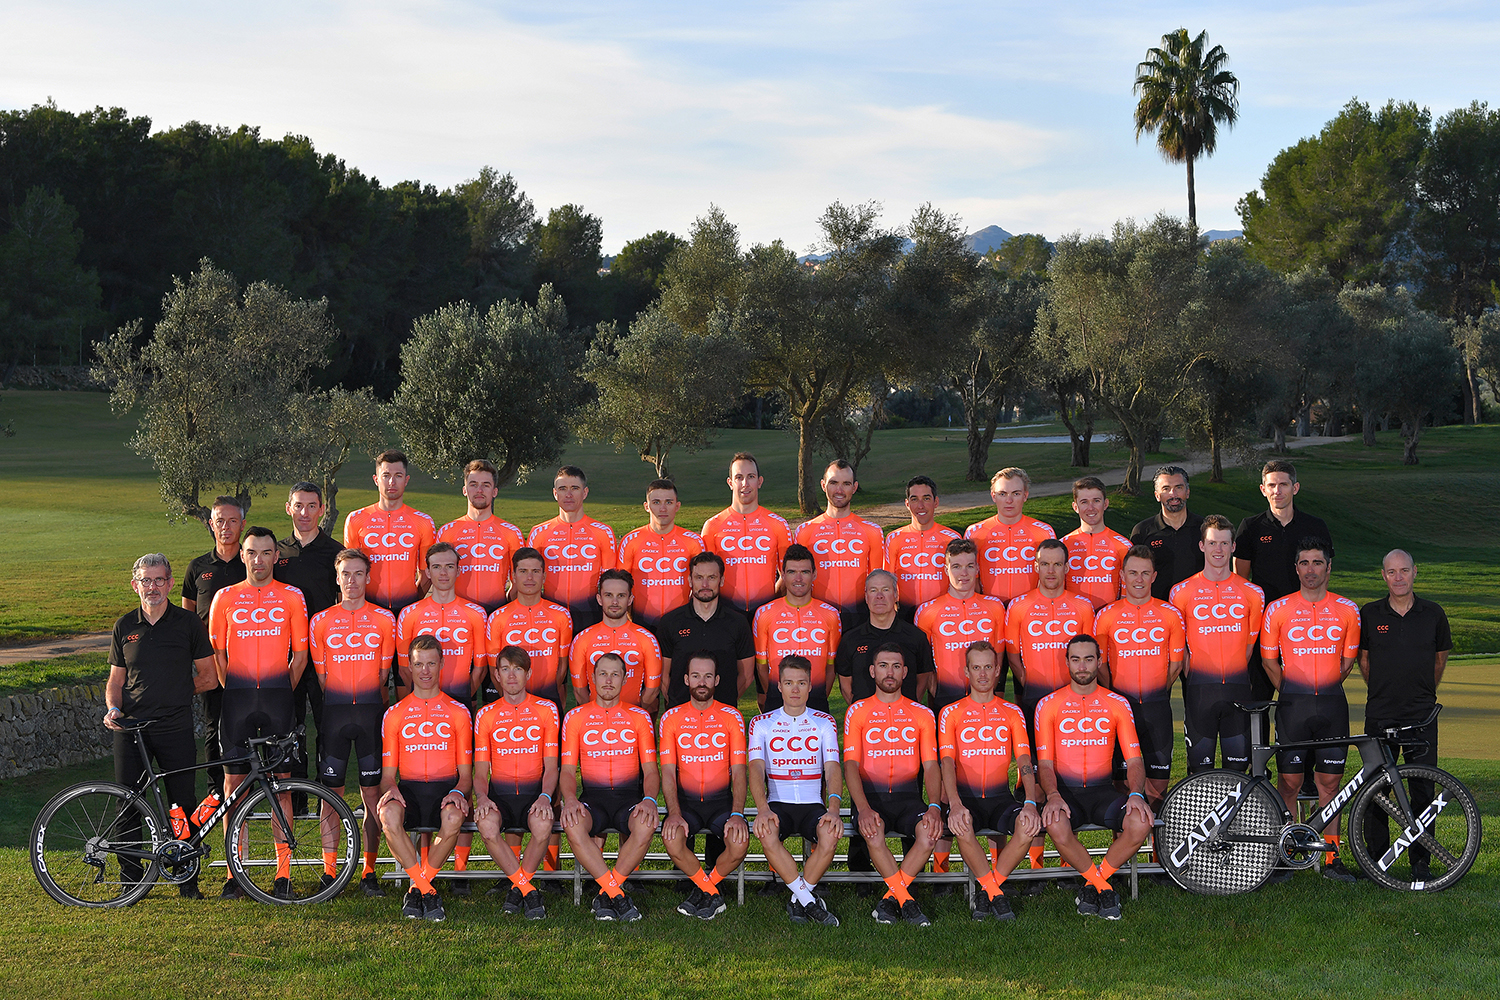 DENIA, SPAIN - DECEMBER 15: Will Barta of The United States and CCC Team / Patrick Bevin of Australia and CCC Team / Josef Černý of Czech Republic and CCC Team / Víctor De la Parte of Spain and CCC Team / Alessandro De Marchi of Italy and CCC Team / Simon Geschke of Belgium and CCC Team / Kamil Gradek of Poland and Team CCC Sprandi Polkowice / Jan Hirt of Czech Republic and  CCC Team / Jonas Koch of Germany and CCC Team / Pavel Kochetkov of Rusia and CCC Team / Jakub Mareczko of Italy and Team CCC and CCC Team / Fausto Masnada of Italy and CCC Team / Kamil Małecki of Poland and CCC Team / Michał Paluta of Poland and CCC Team / Serge Pauwels of Belgium and CCC Team / Joey Rosskopf of The United States and CCC Team / Szymon Sajnok of Poland and CCC Team / Michael Schär of Switzerland and CCC Team / Matteo Trentin of Italy and CCC Team / Attila Valter of Hungary and CCC Team / Greg Van Avermaet of Belgium and CCC Team / Gijs Van Hoecke of Belgium and CCC Team / Nathan Van Hooydonck of Belgium and CCC Team / Guillaume Van Keirsbulck of Belguim and CCC Team / Francisco Ventoso of Spain and CCC Team / Łukasz Wiśniowski of Poland and CCC Team / Ilnur Zakarin of Russia and CCC Team / Georg Zimmermann of Germany and CCC Team / Jim Ochowicz of The United States General Manager of CCC Team / Piotr Wadecki of Poland Sports director of CCC Team / Fabio Baldato of Italy Sports director of Team CCC / Steve Bauer of Canada Director of VIP Services and CCC Team / Gabriele Missaglia of Italy Sports director of Team CCC / Valerio Piva of Italy Sports director of Team CCC / Marco Pinotti of Italy Head of Performance of Team CCC / Jackson Stewart of The United States Sports director of Team CCC / Staff / during the Team CCC 2020, Photo Session / @CCCProTeam / on December 15, 2019 in Denia, Spain. (Photo by Tim de Waele/Getty Images)